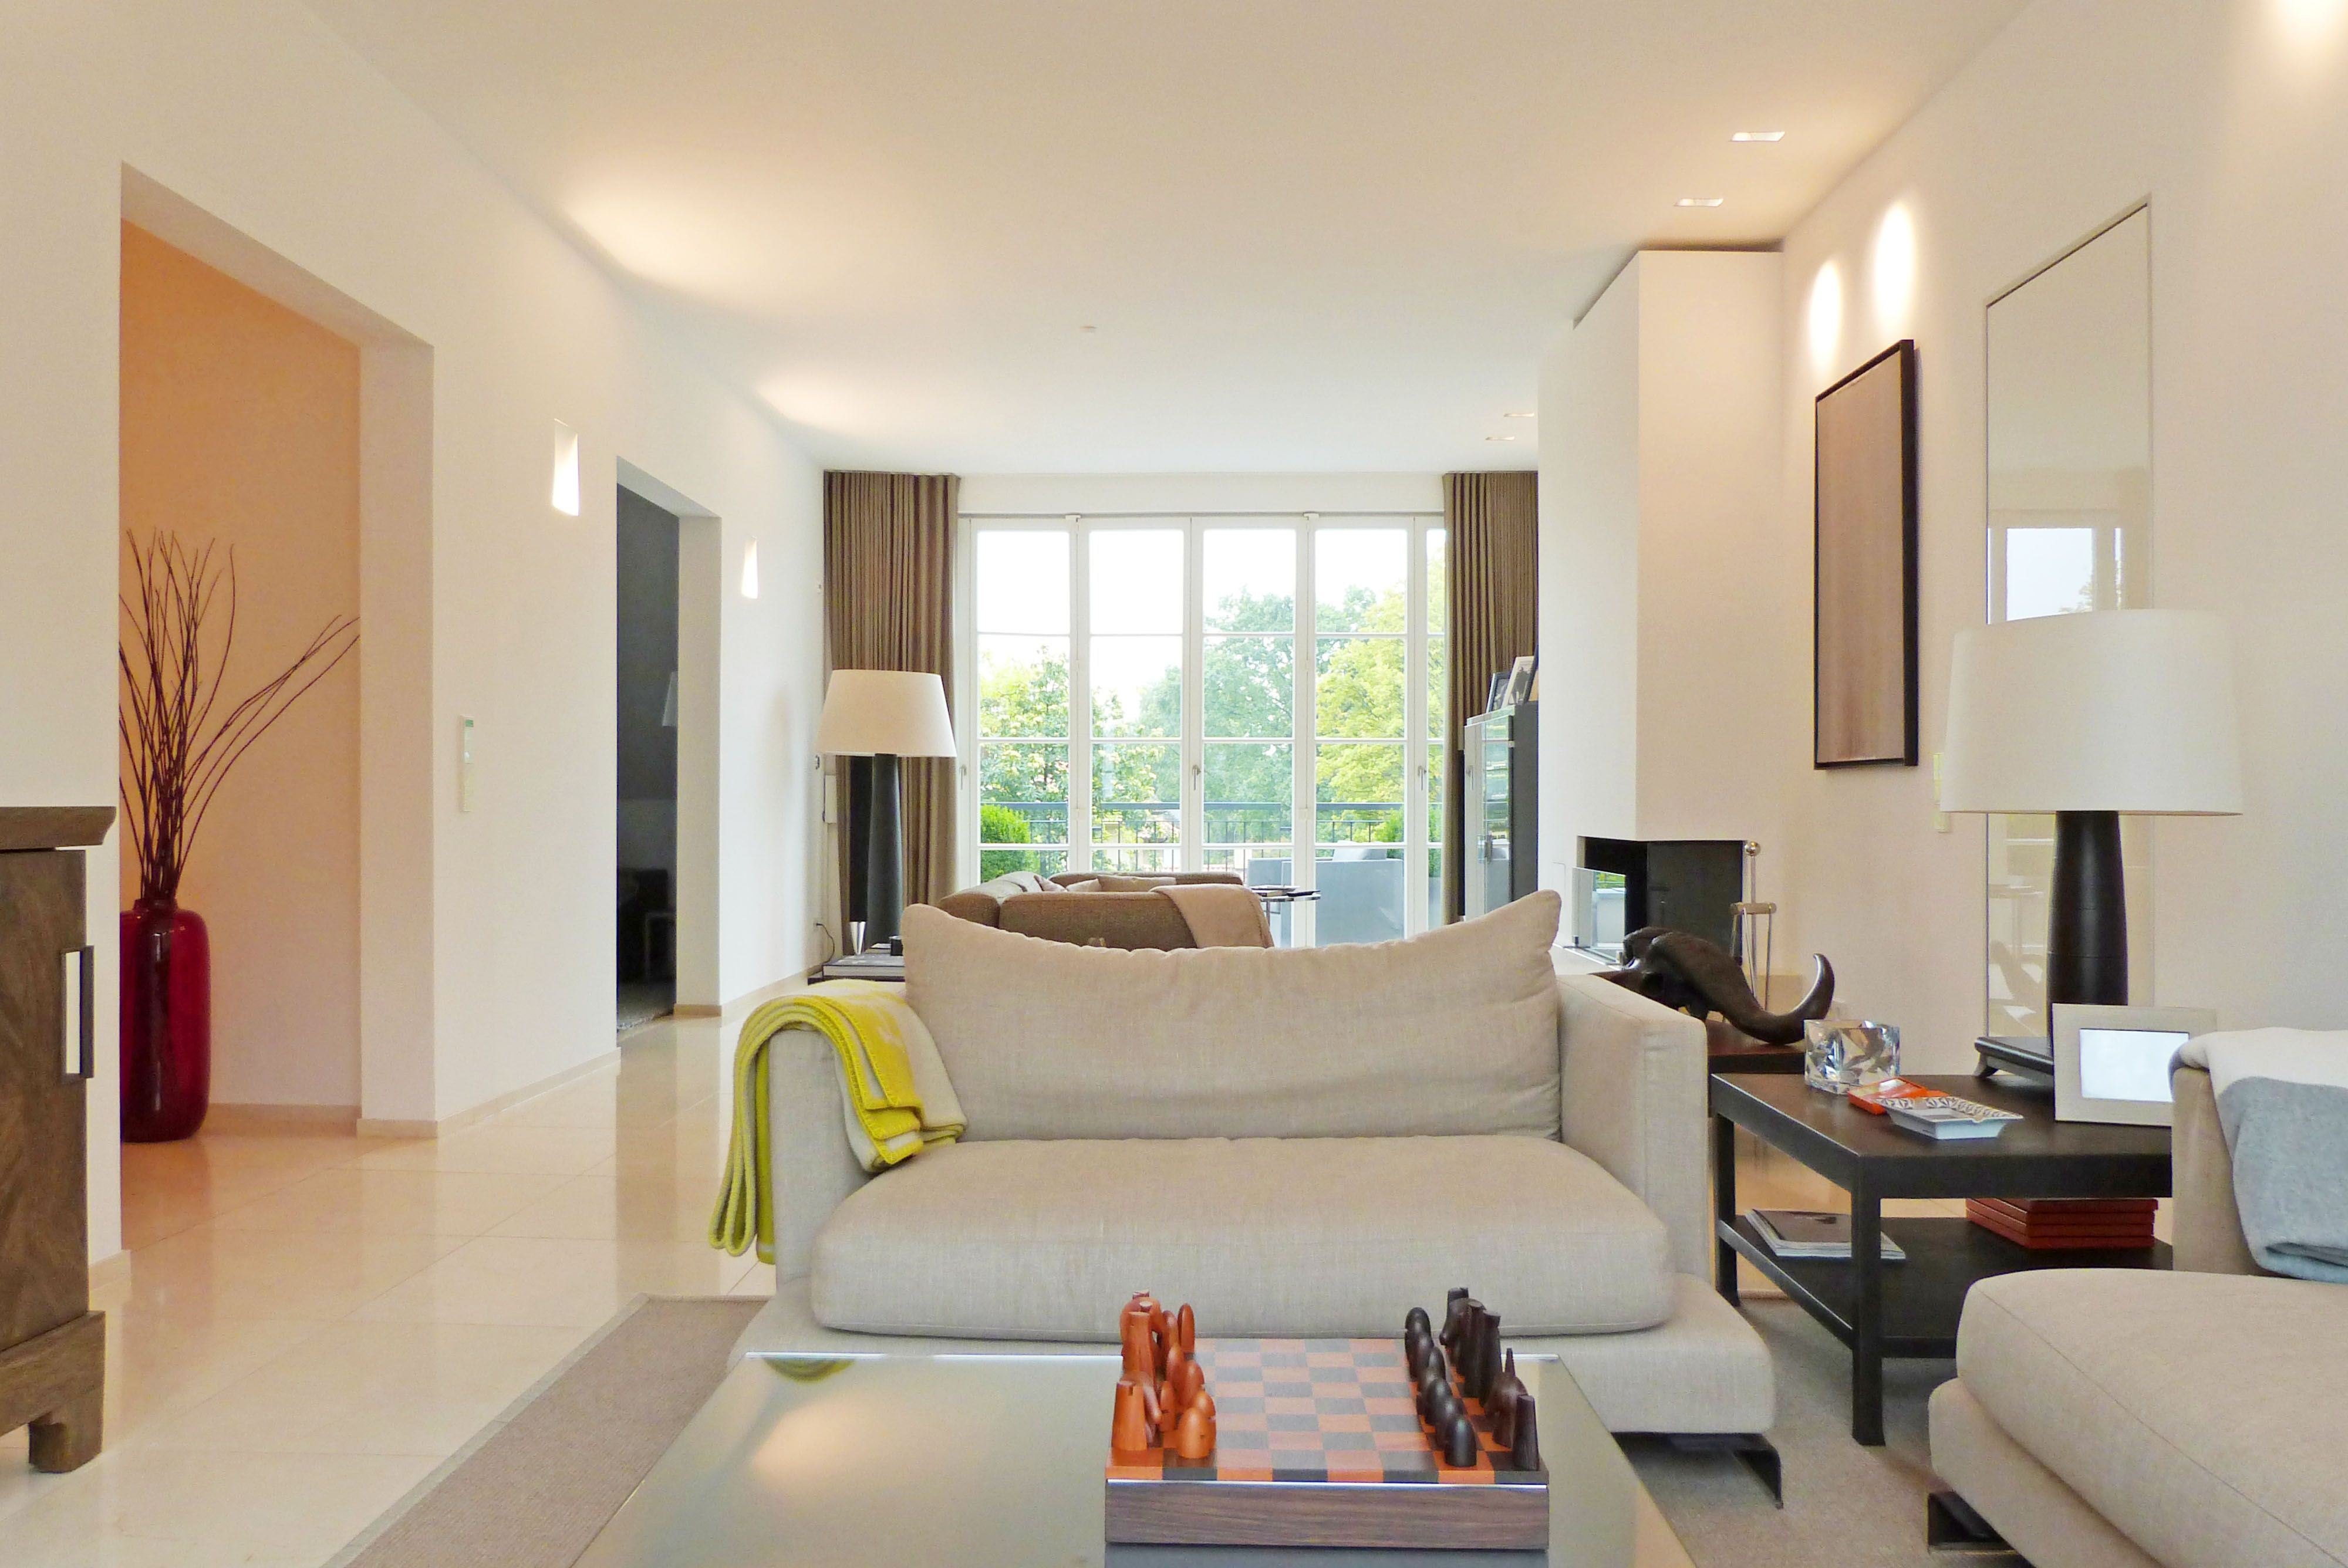 Superb Penthouse in D sseldorf Germany for Sale LuxuryRealEstate